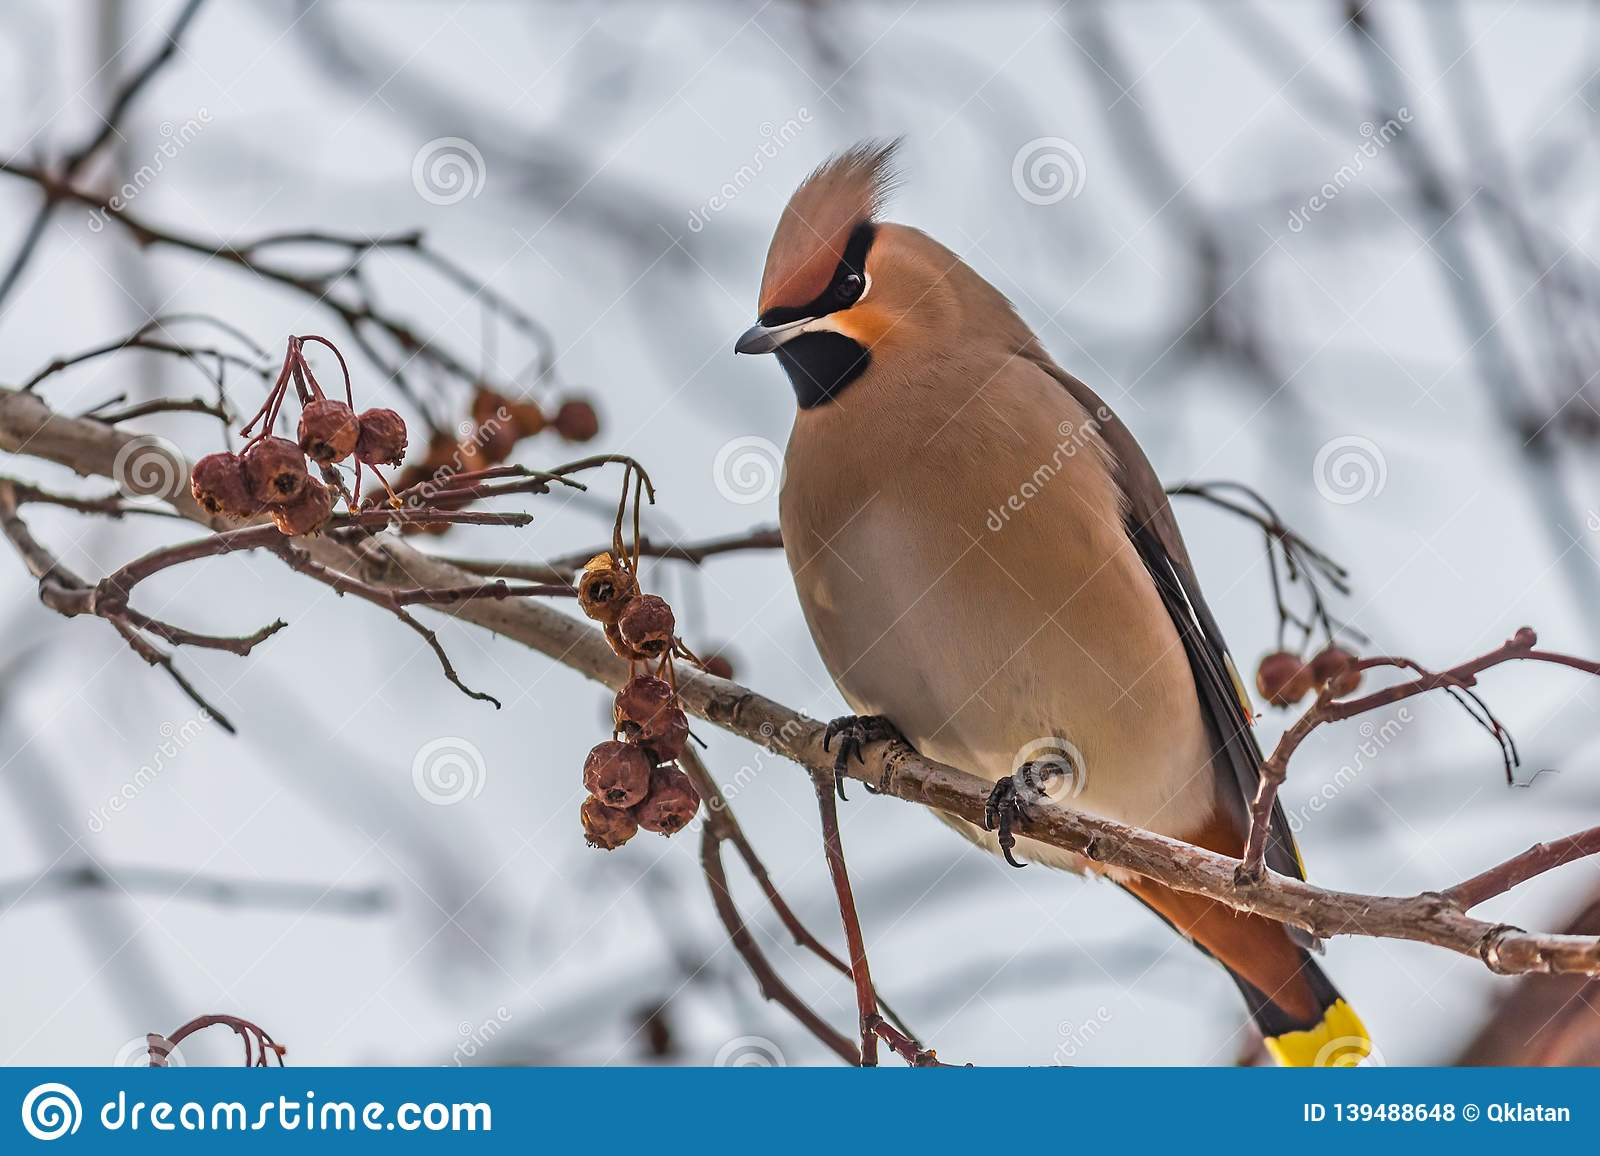 A fun gray and orange Bohemian waxwing Bombycilla garrulus eats a red small apple on a branch of wild apple tree in the